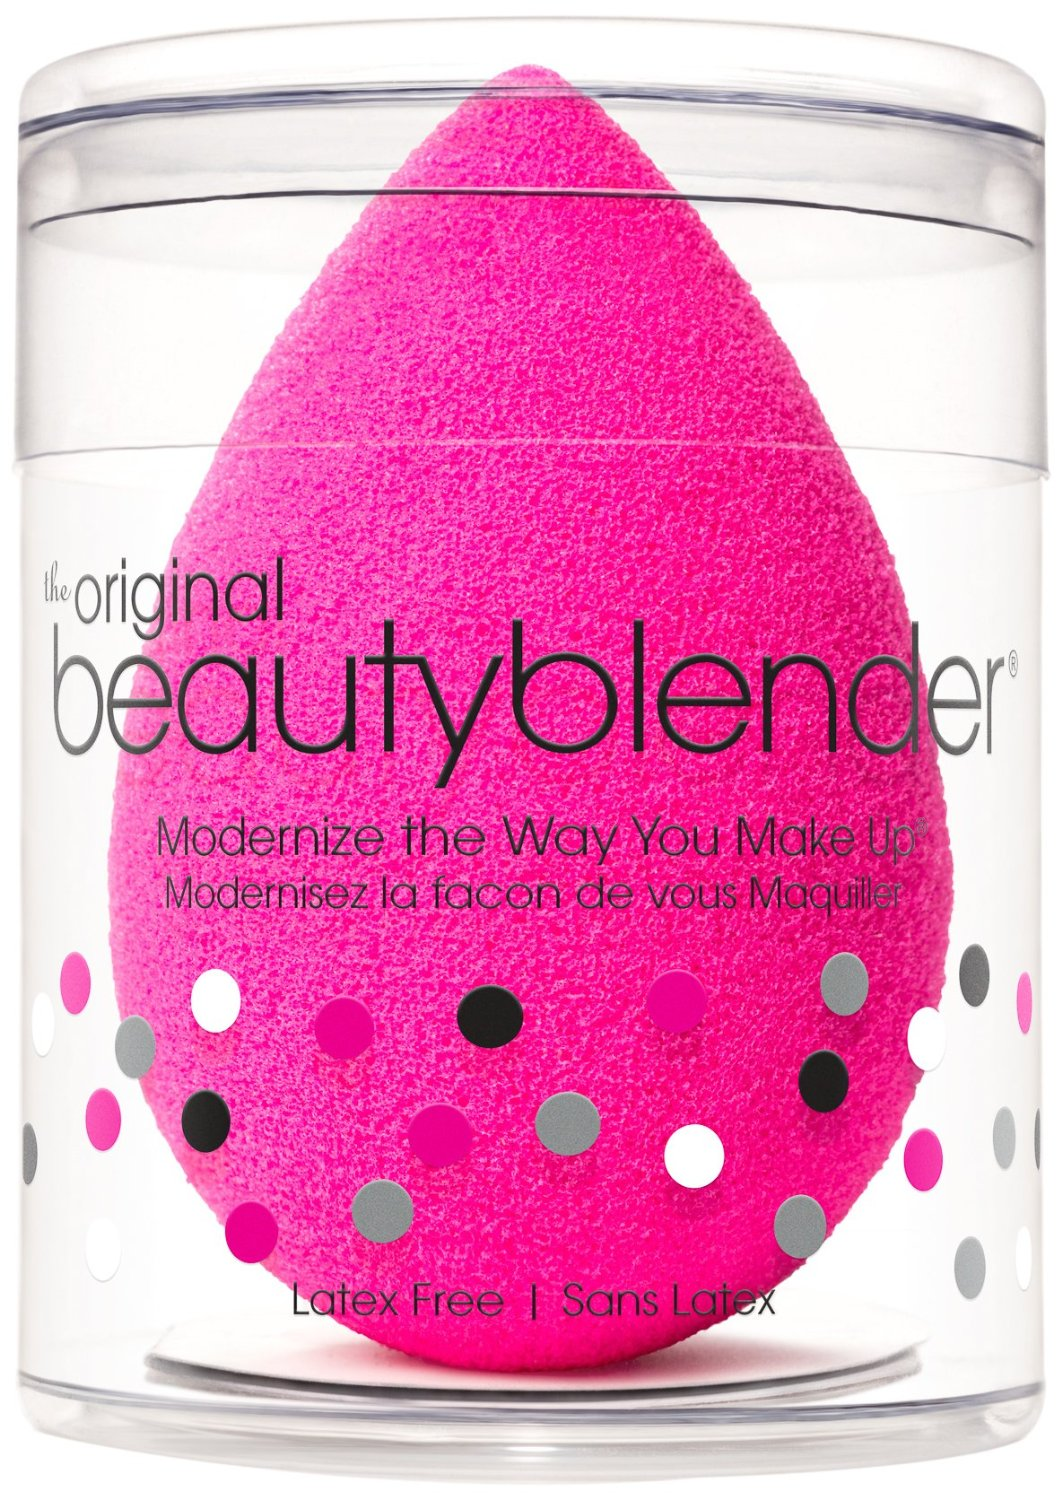 Beautyblender Modernize The Way You Make Up Sponge